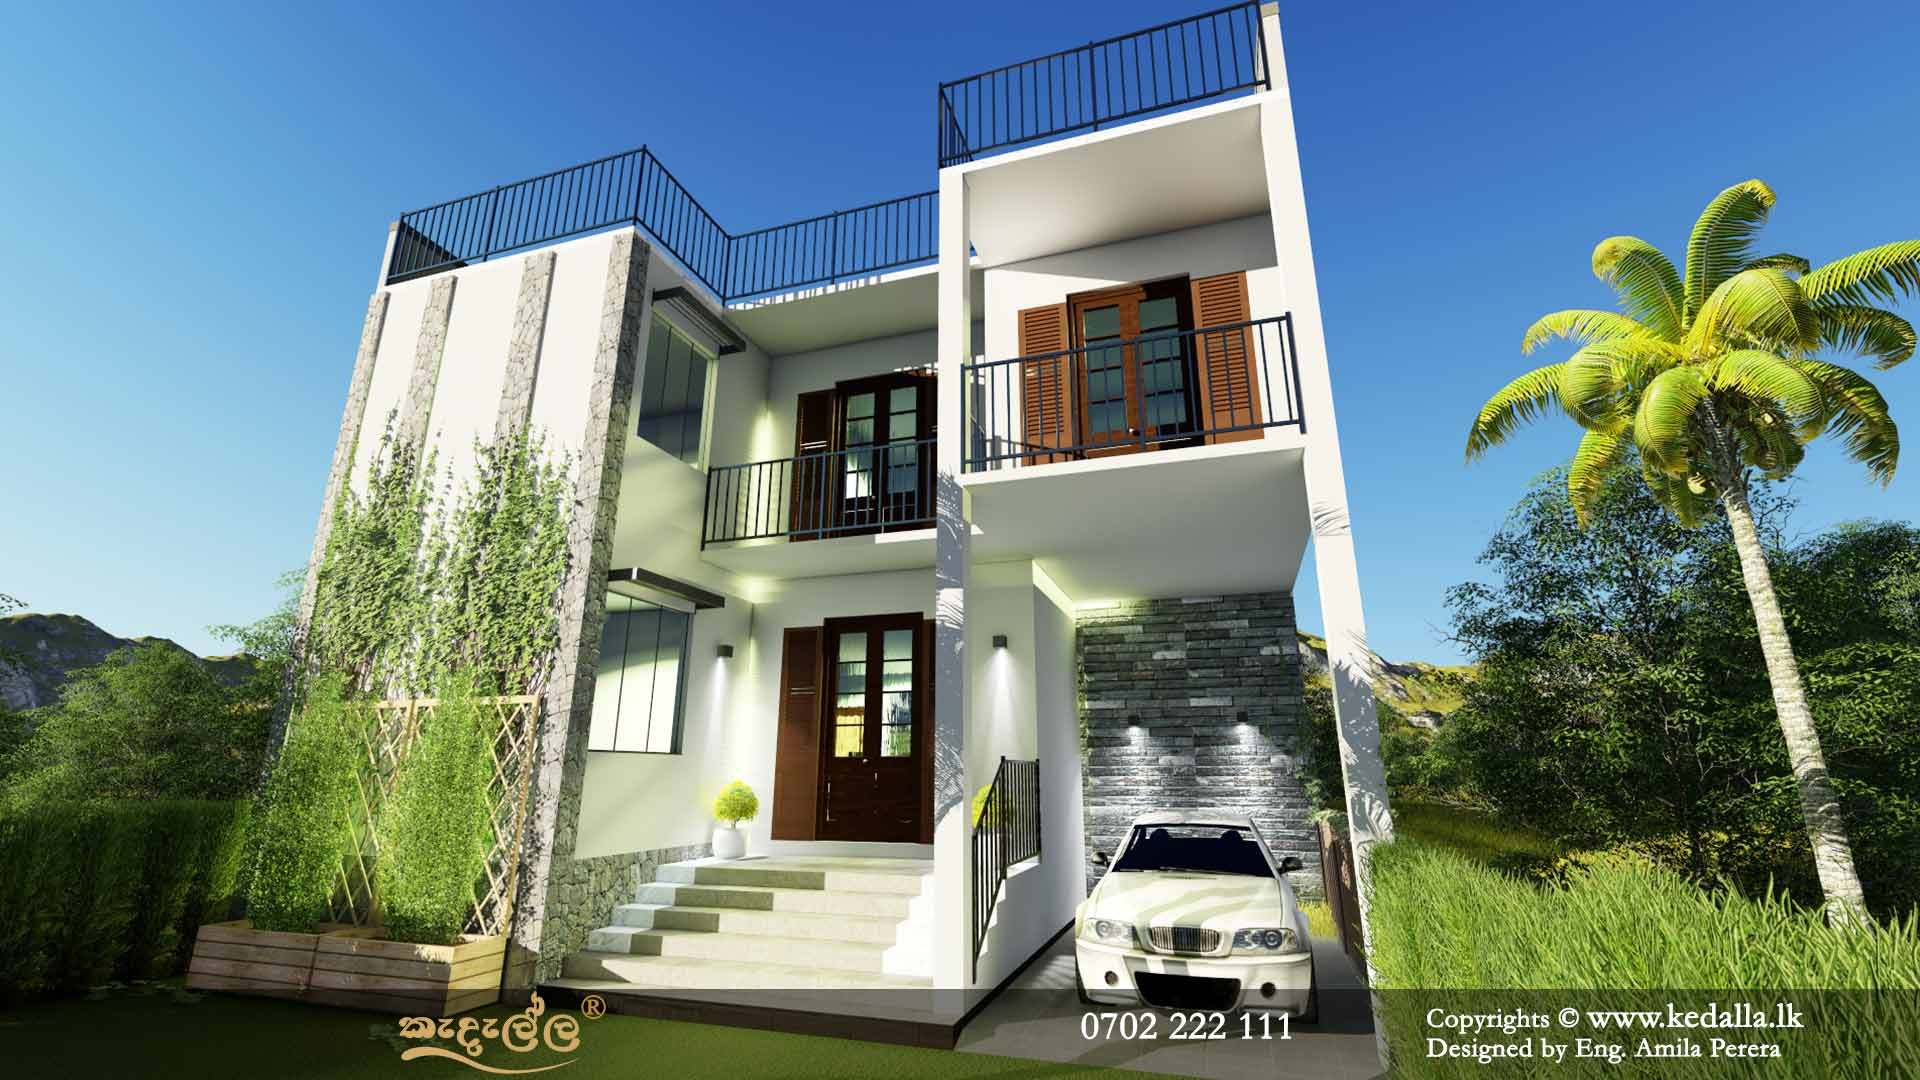 Elevated House Plans in Sri Lanka Mountain Plans|Kedalla.lk on simple wooden house design, simple building designs, simple home designs, modern kitchen designs, simple loft designs, bedroom designs, simple modern lights, simple kitchen designs, simple hotel designs, simple modern graphic design, simple modern interior design, simple modern blueprints, simple decoration designs, contemporary house designs, simple decorating designs, simple modern garage, small house designs, entrances modern homes designs, simple house design housing, simple house design ideas,